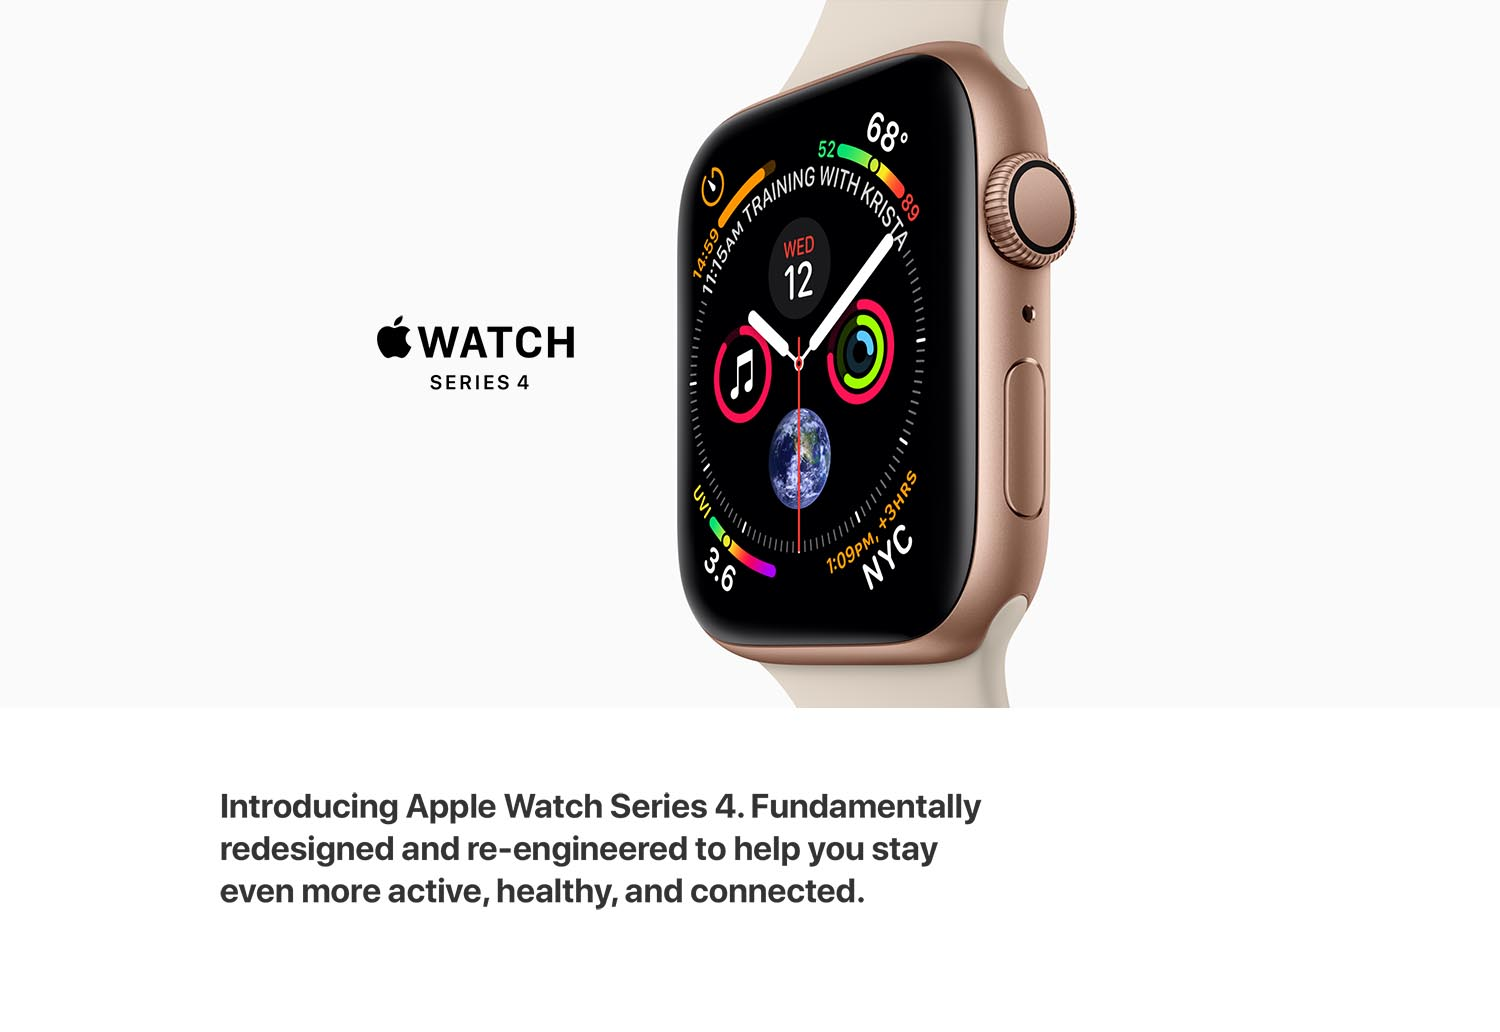 f1afd0dea53 Amazon.com  Apple Watch Series 4 (GPS